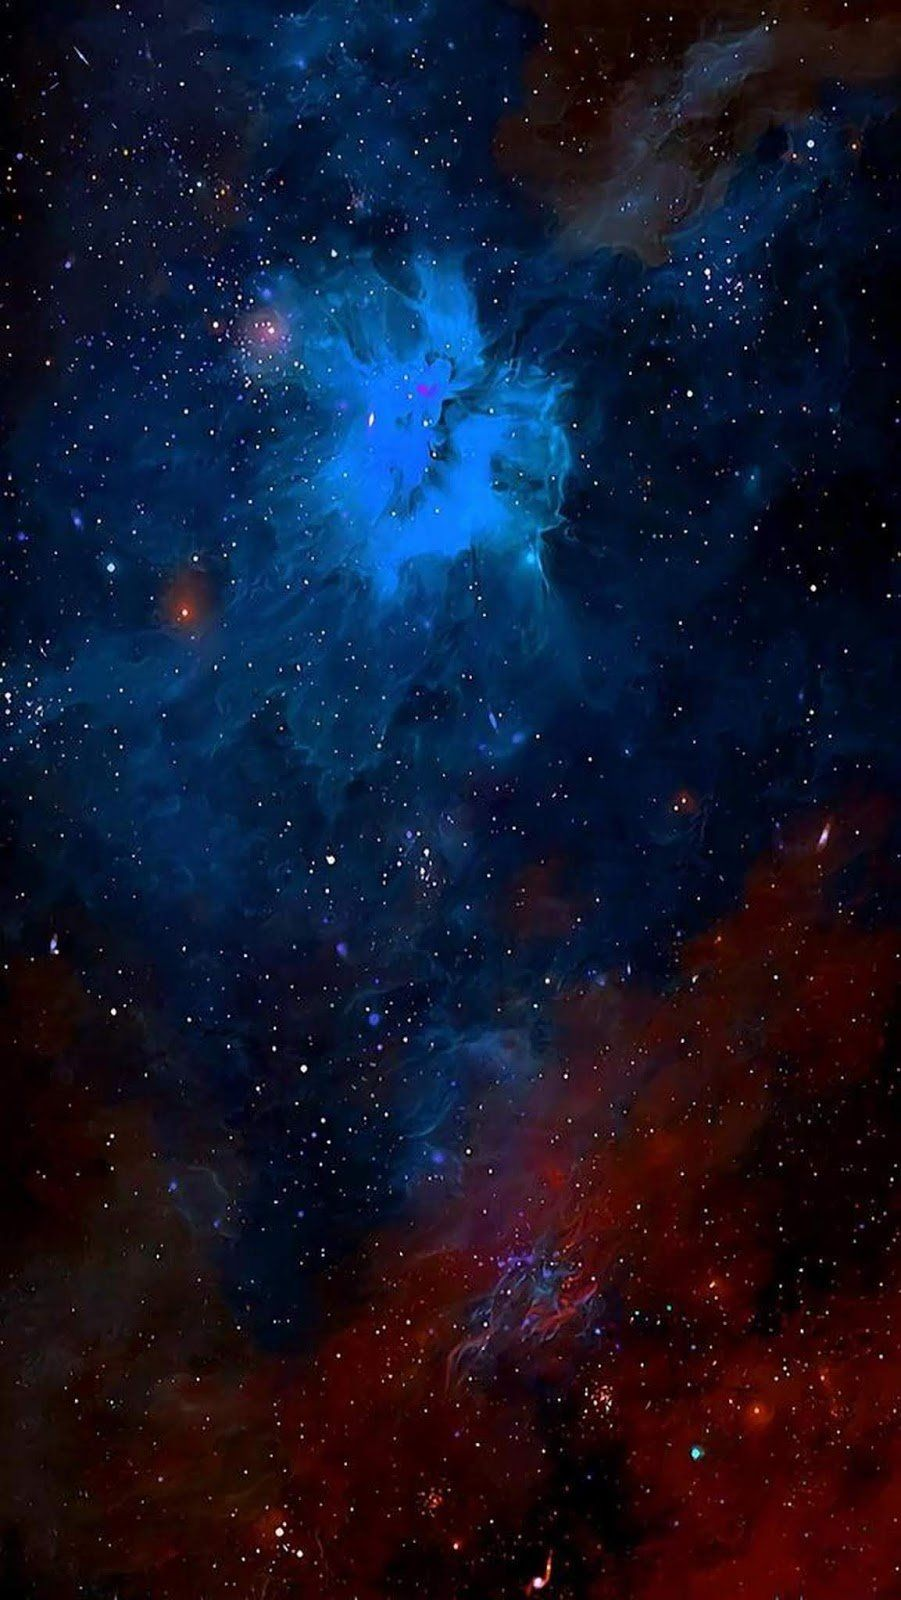 Iphone 11 Space Wallpapers Top Free Iphone 11 Space Backgrounds Wallpaperaccess